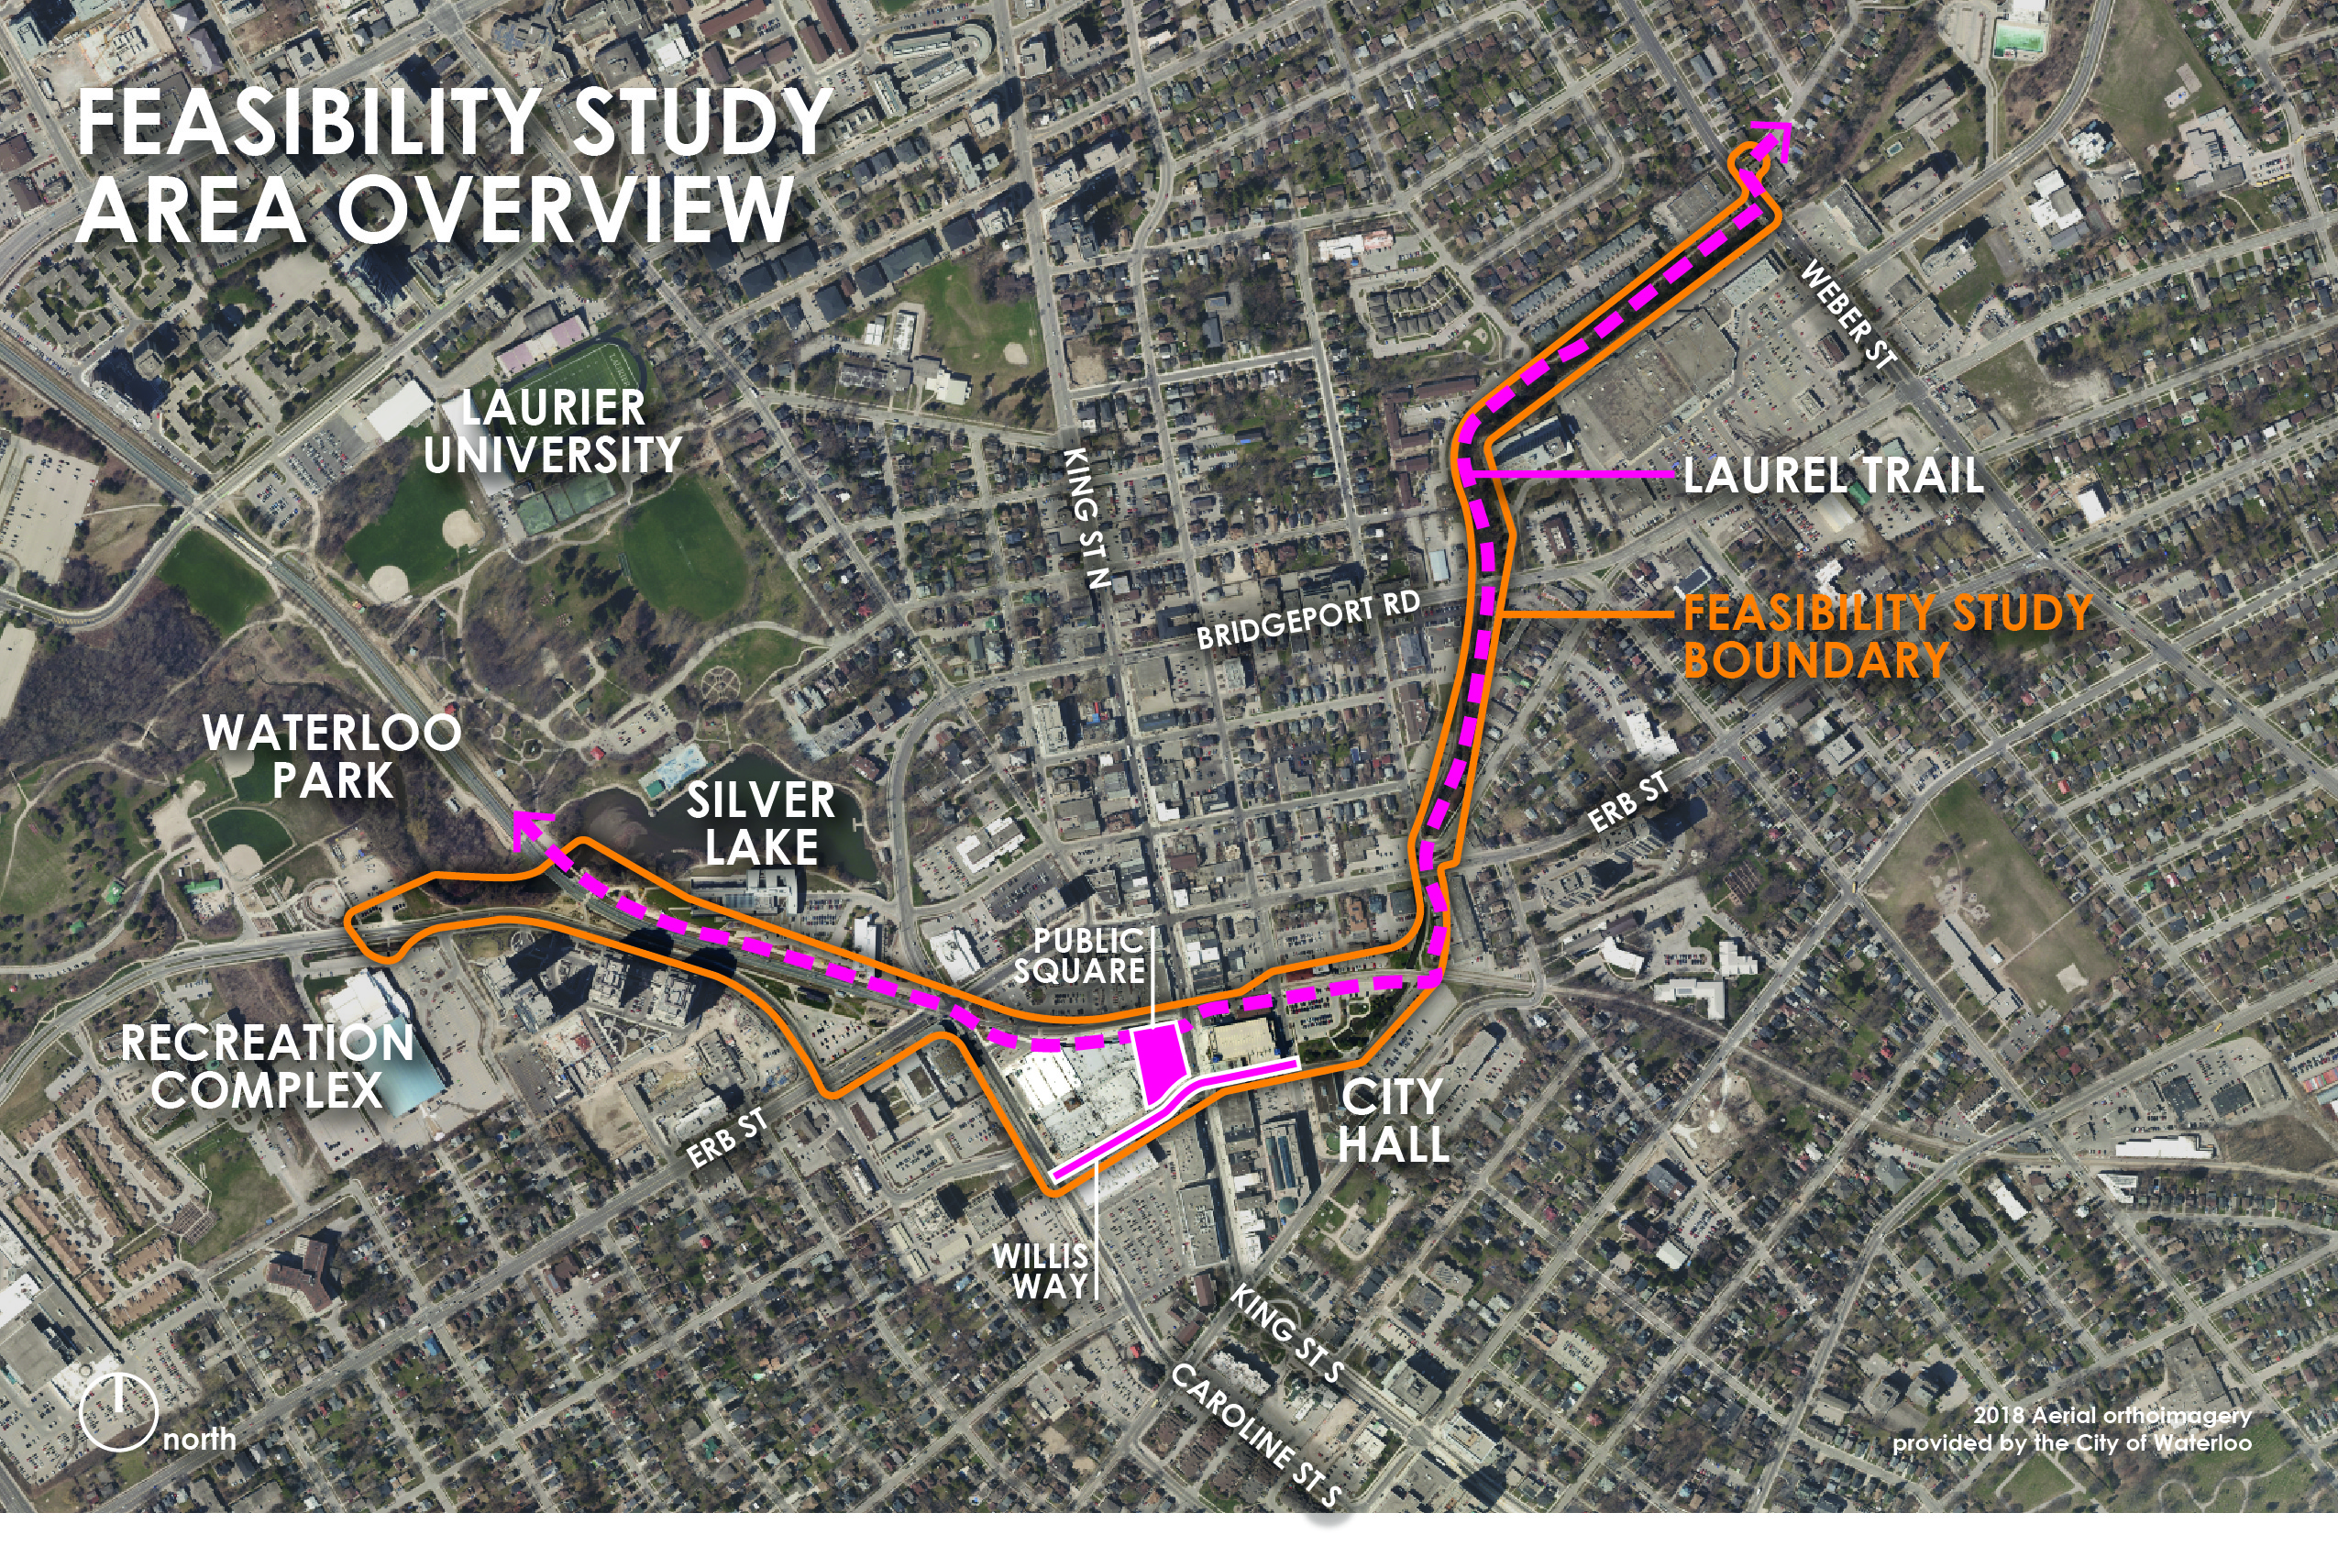 Map of the Laurel Greenway study boundary